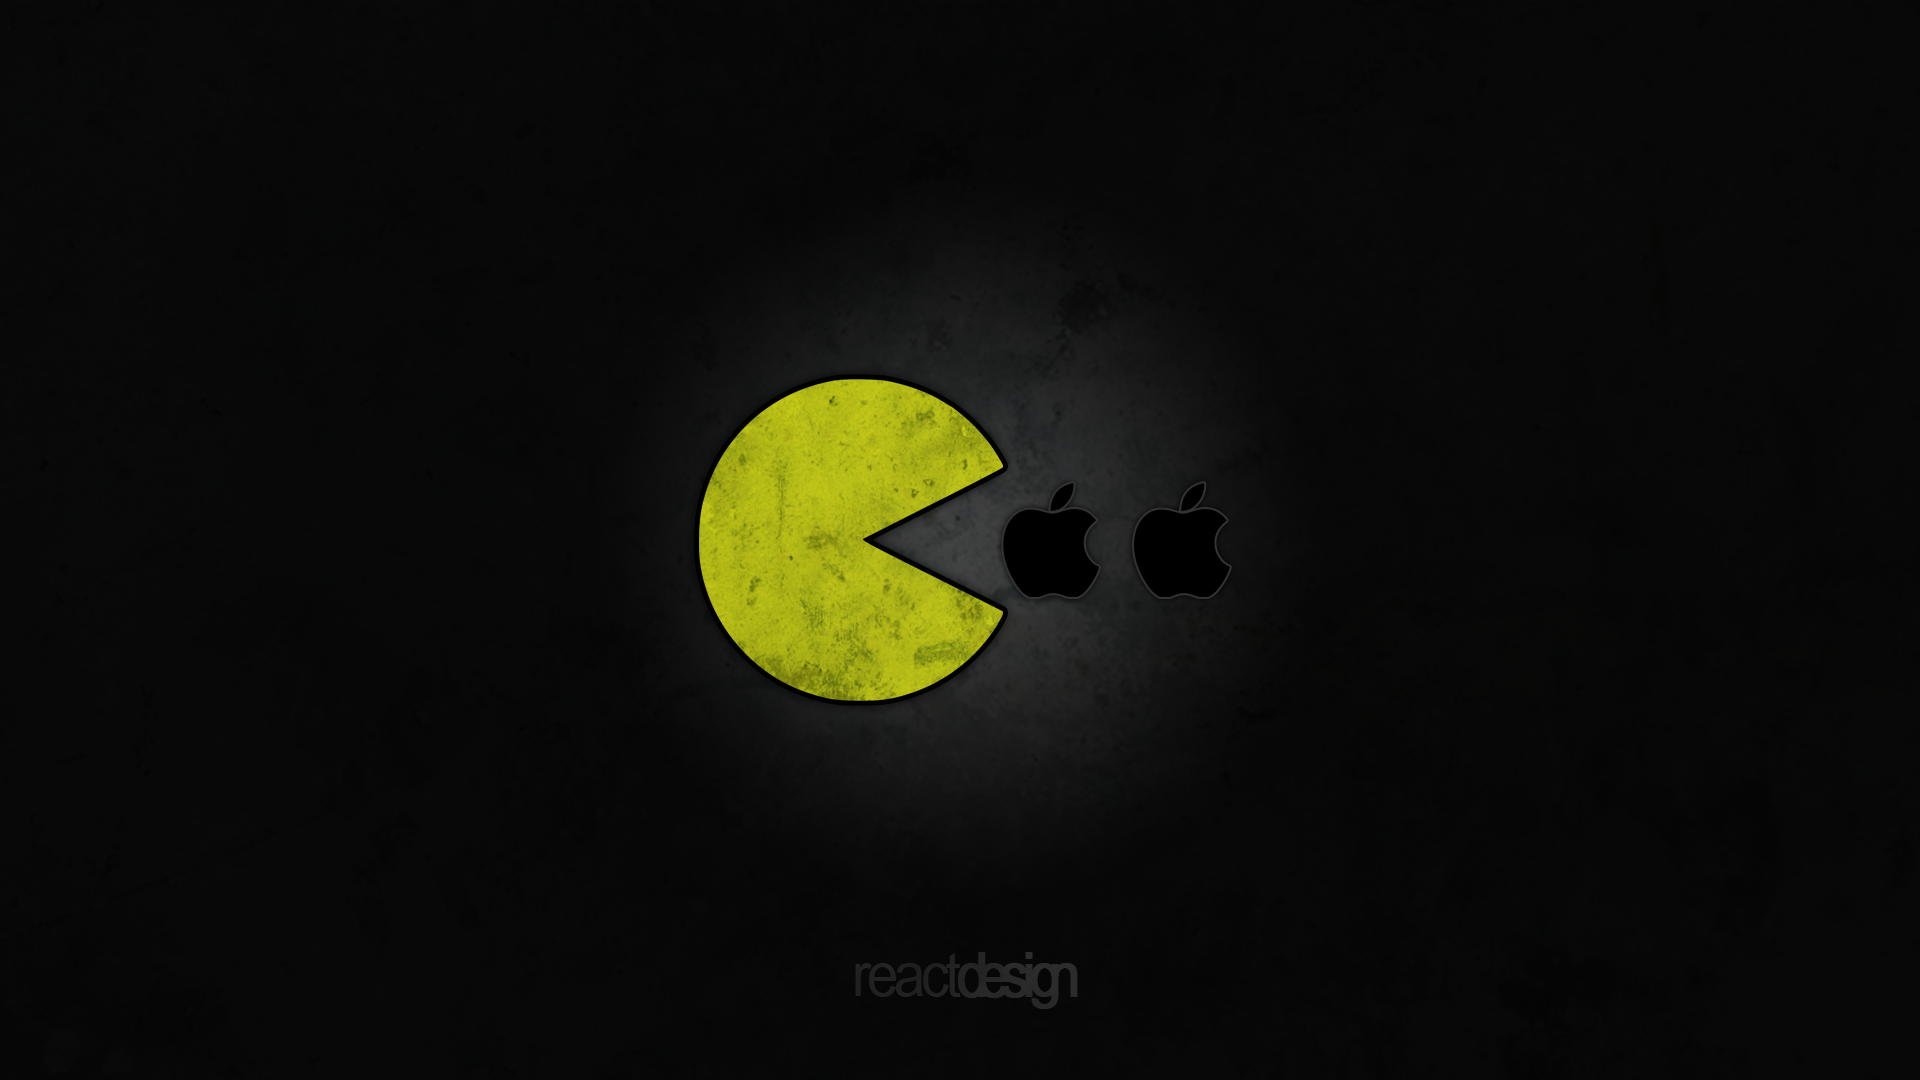 pac-man likes apple: 1920x1080reactdesign on deviantart